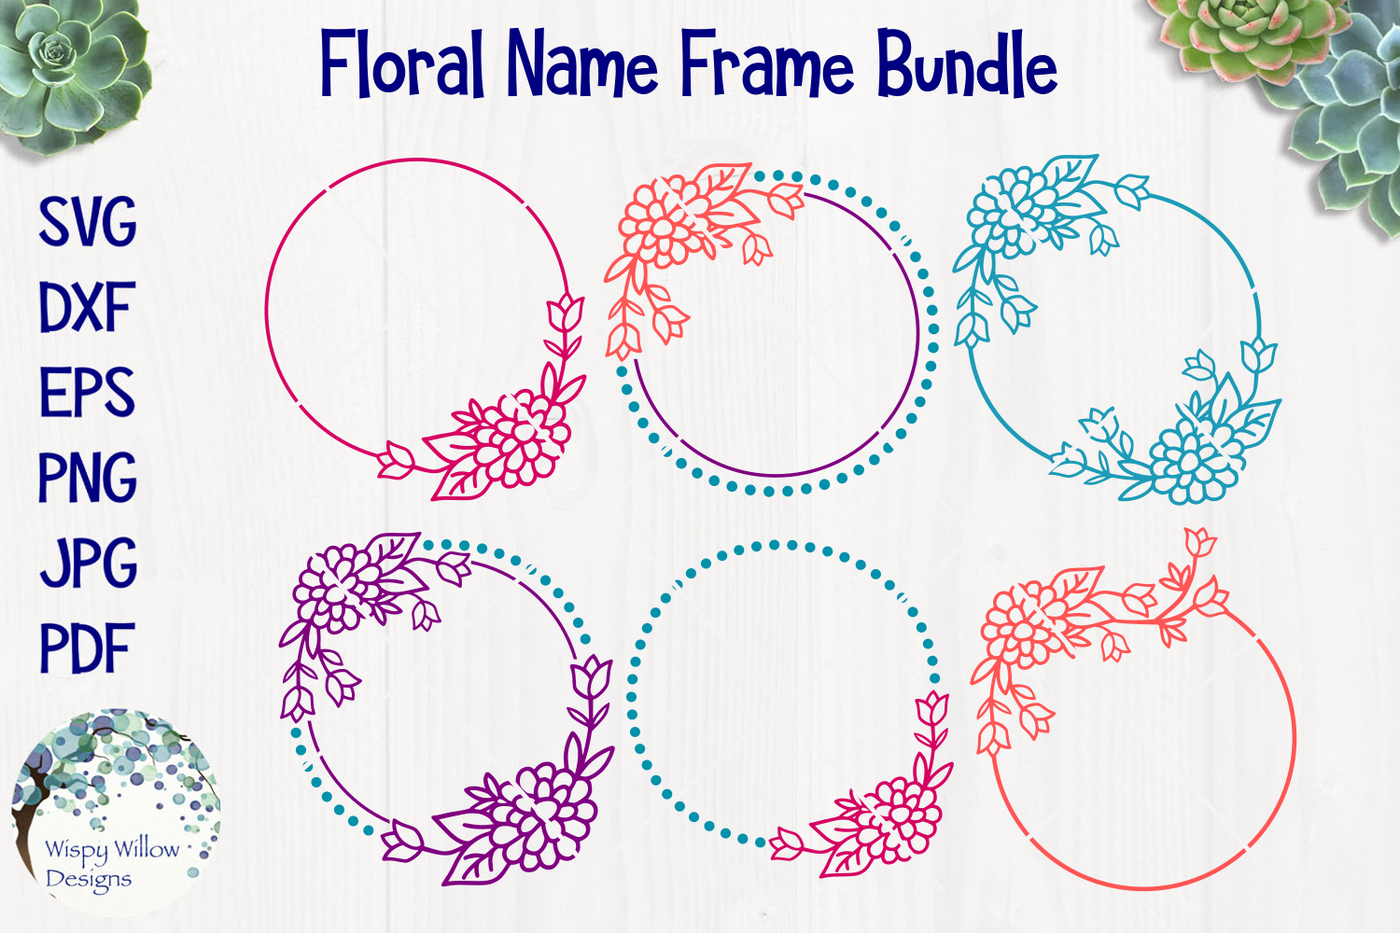 Floral Name Frame Bundle By Wispy Willow Designs Thehungryjpeg Com